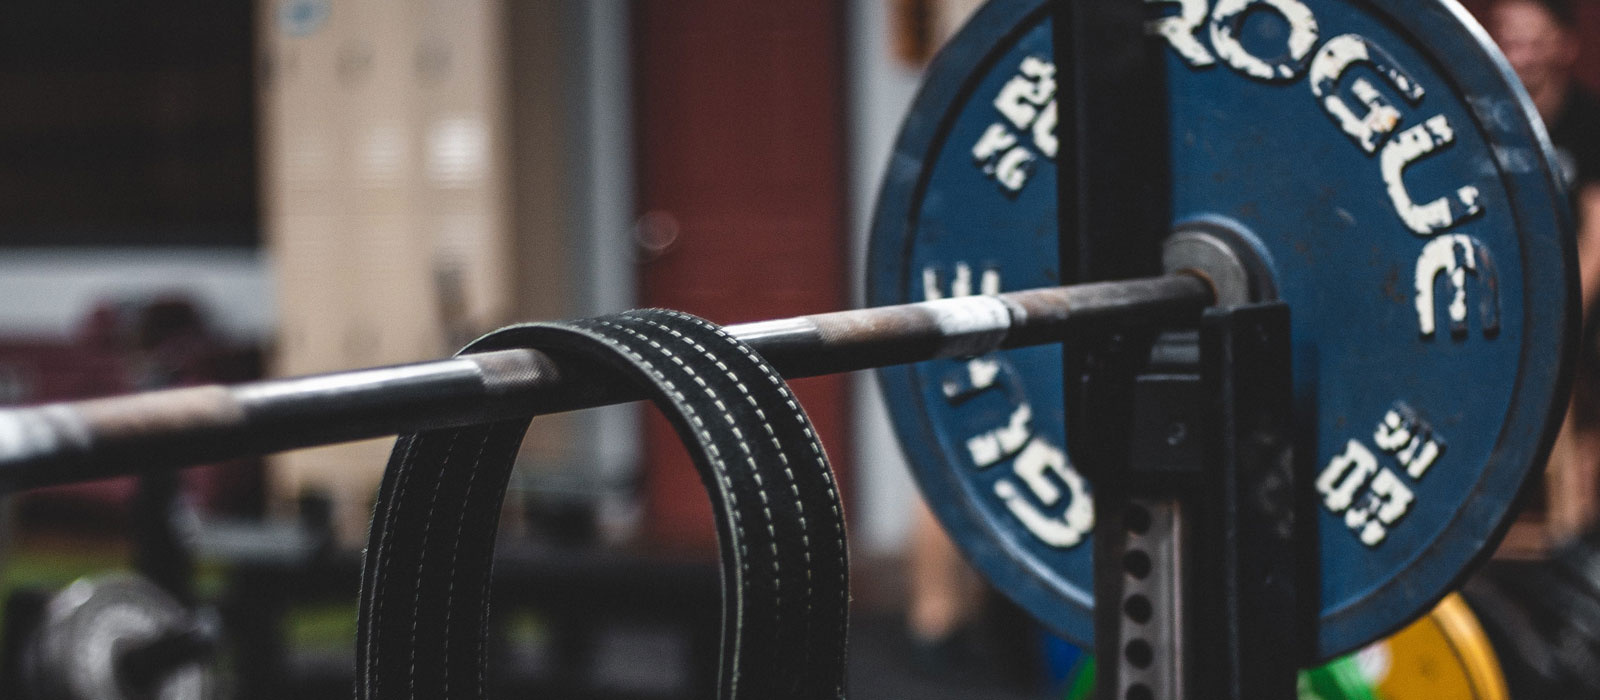 Why Pinellas Barbell Is Ranked One Of The Best Gyms in Pinellas Park FL, Why Pinellas Barbell Is Ranked One Of The Best Gyms near St Petersburg FL, Why Pinellas Barbell Is Ranked One Of The Best Gyms near Clearwater FL, Why Pinellas Barbell Is Ranked One Of The Best Gyms near Tampa Bay FL